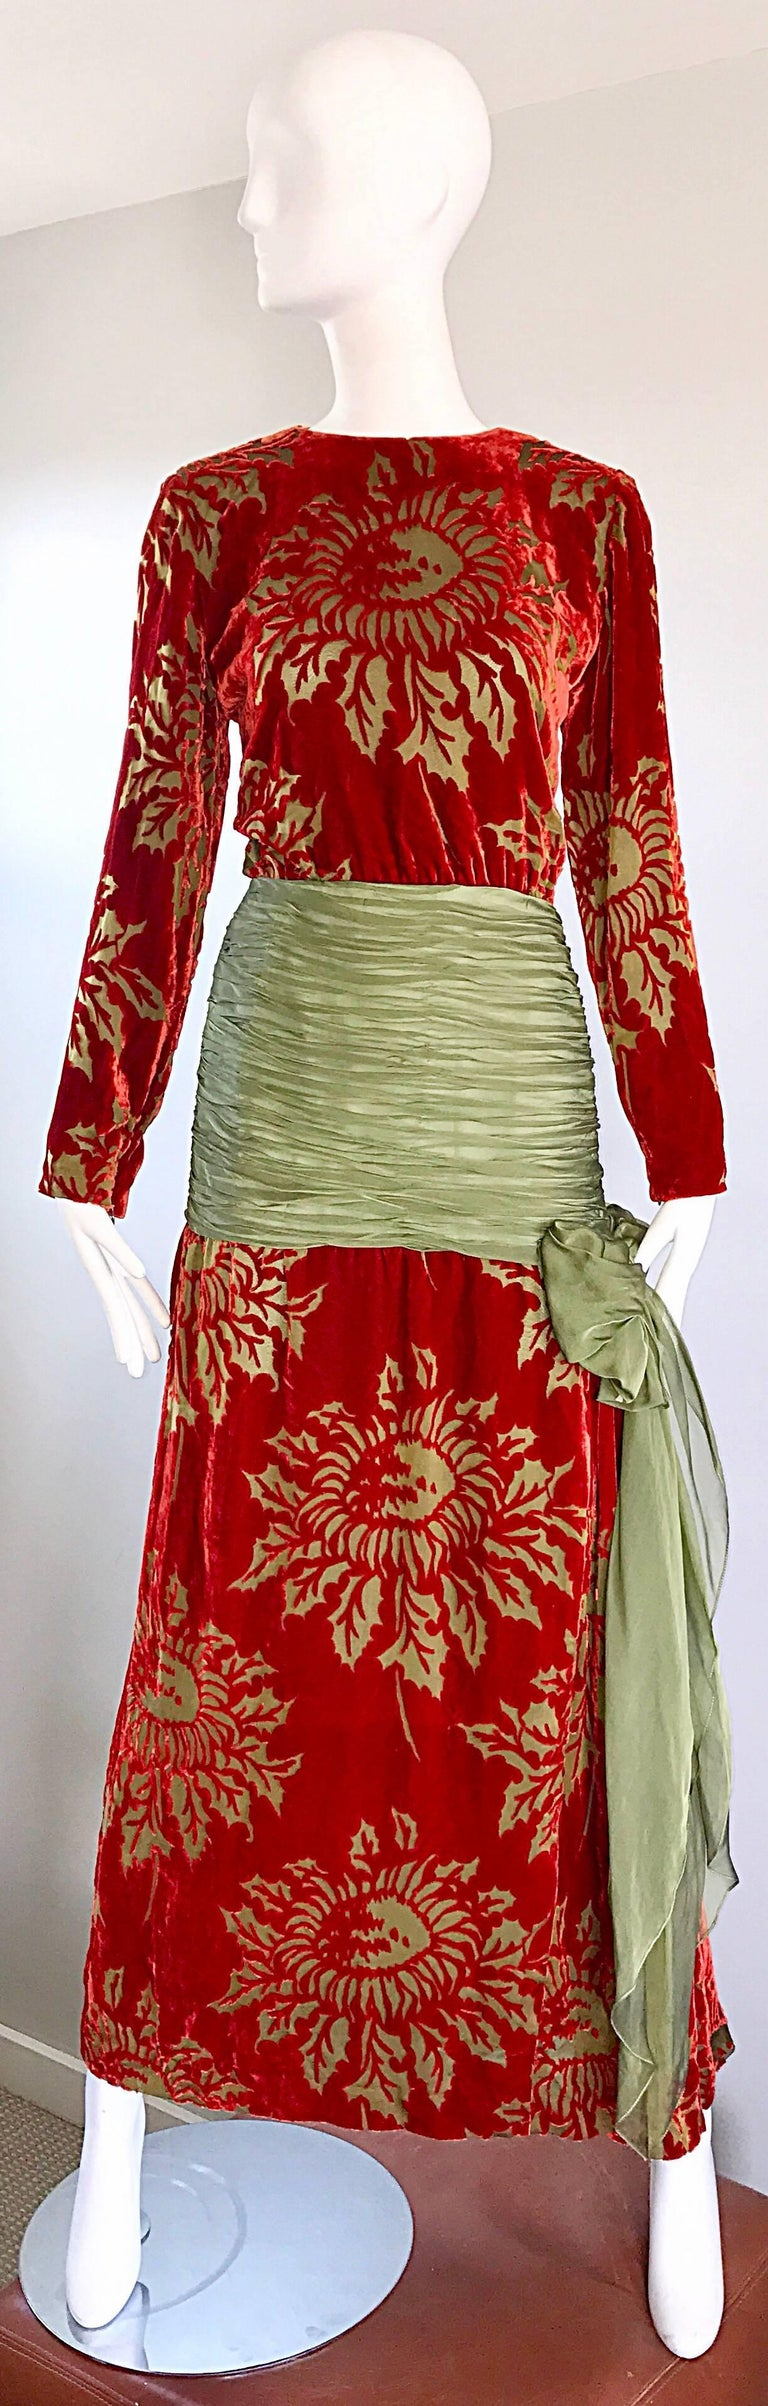 Gorgeous vintage JAMES GALANOS deep red and chartreuse green burn-out silk velvet 1920s style long sleeve evening dress! Gorgeous deep red color with chartreuse cut-outs in shapes of flowers. Drop waist features flattering ruched chartreuse chiffon,